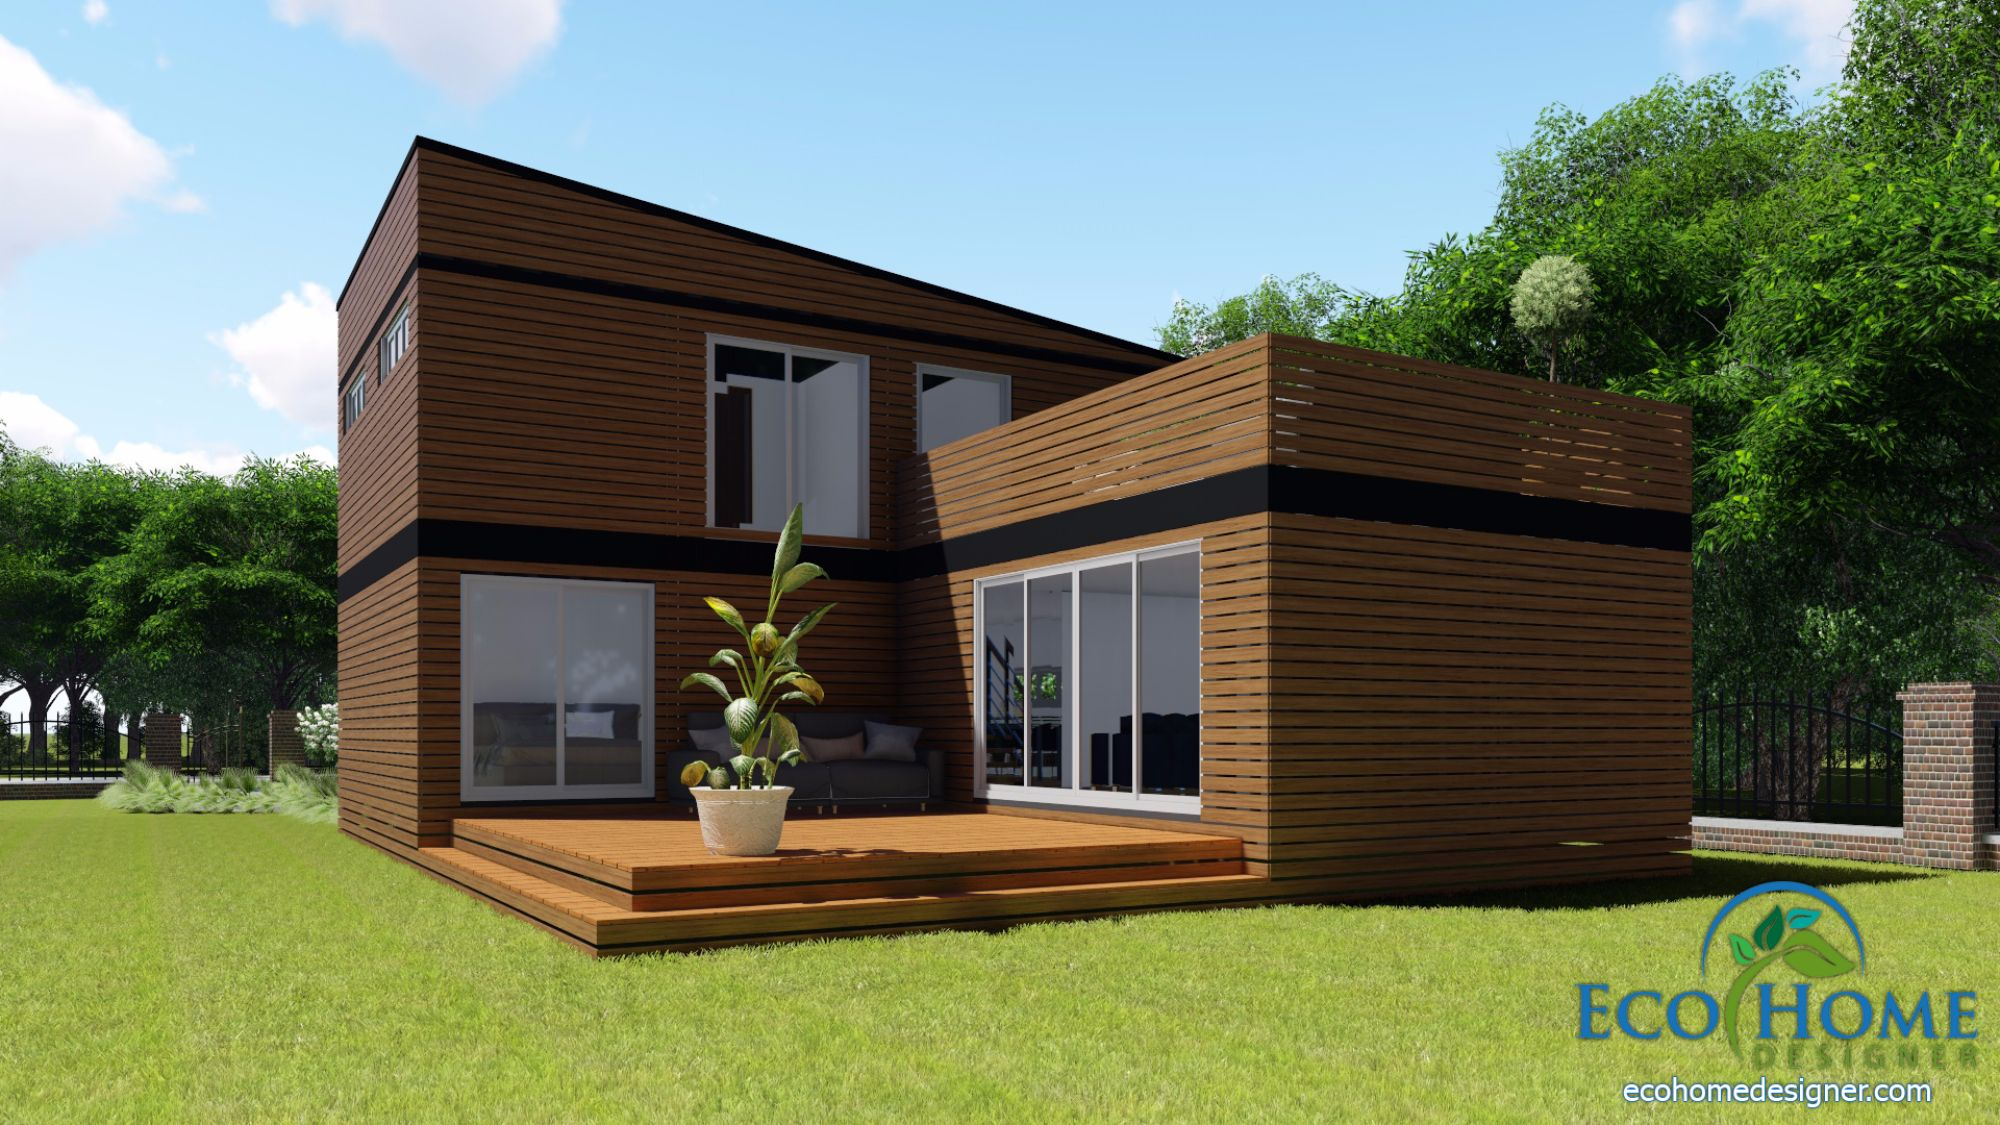 Sch17 10 x 20ft 2 story container home plans eco home for Shipping container homes plans